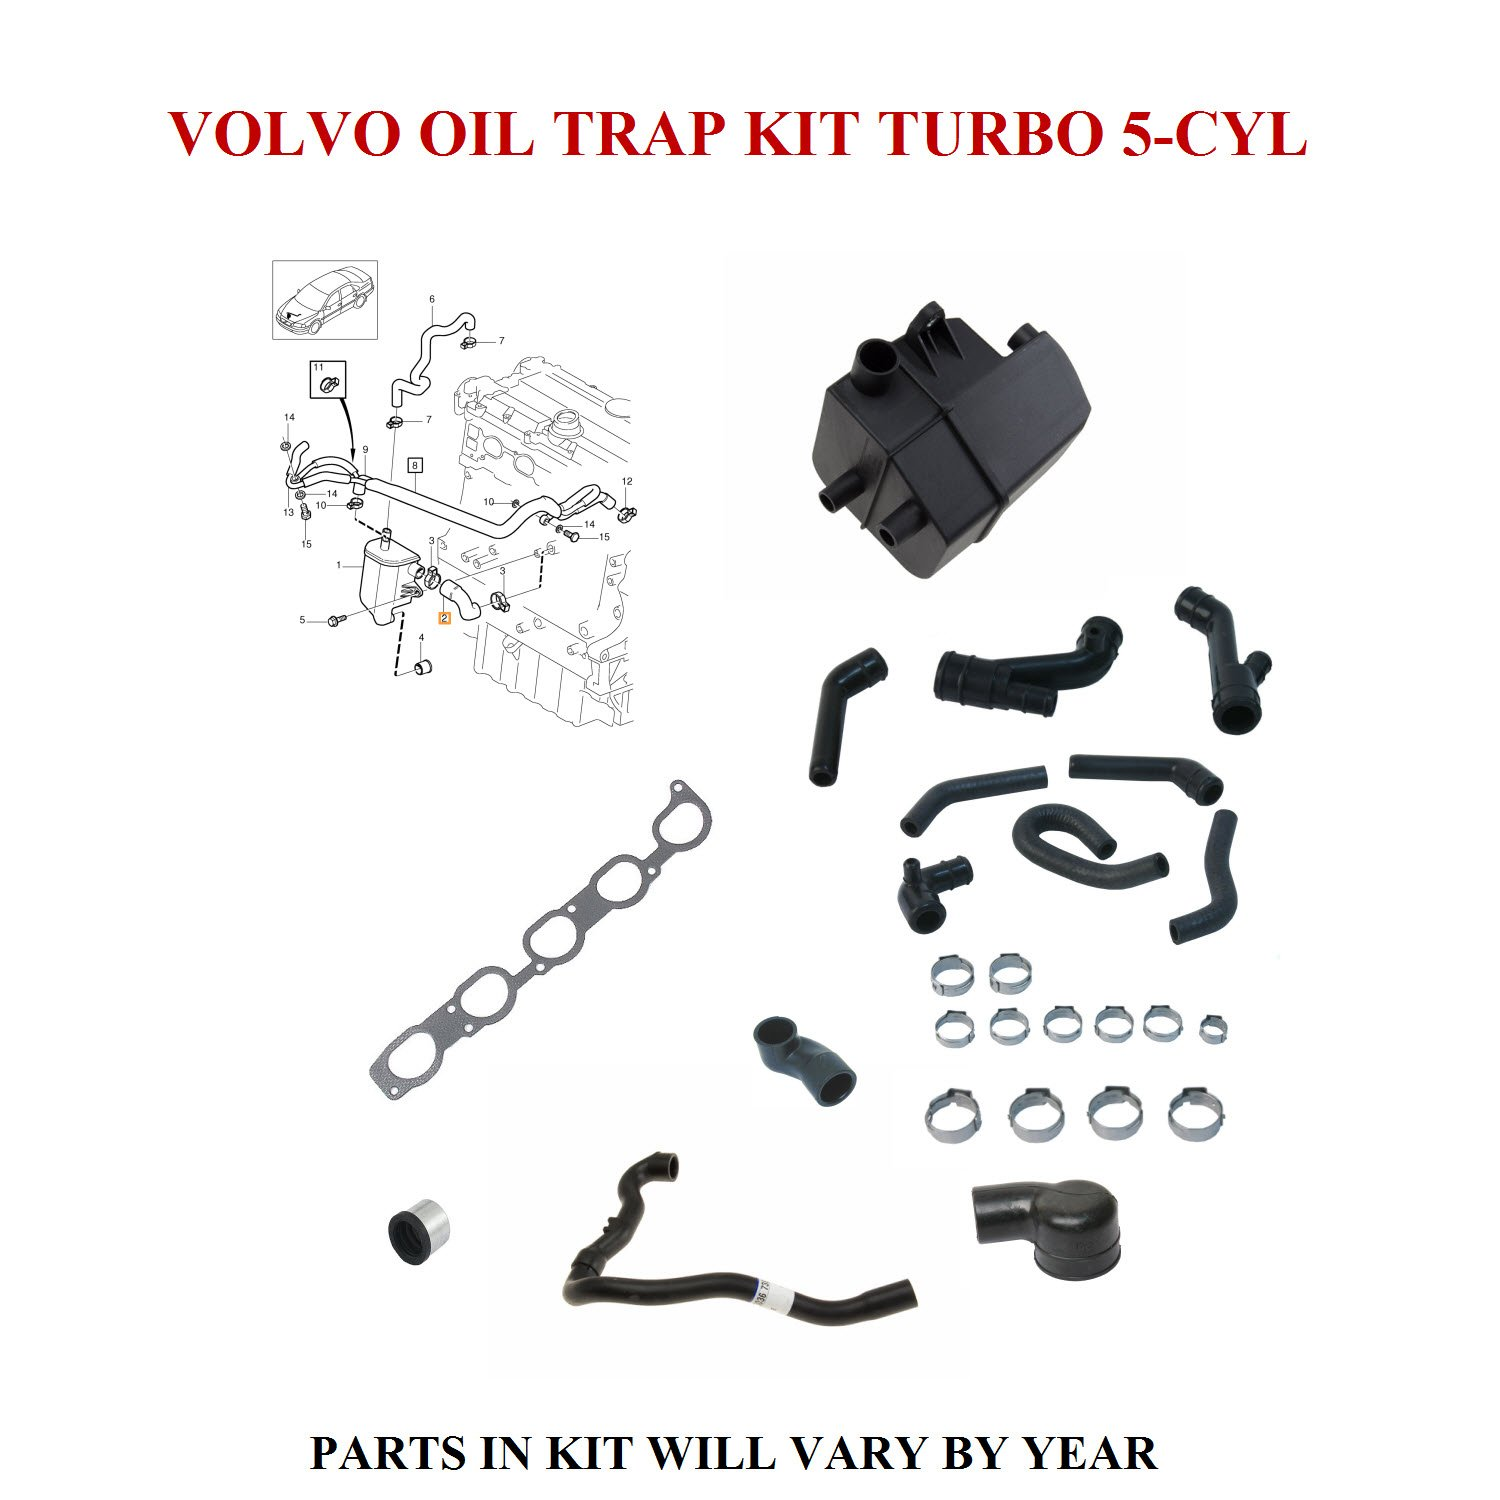 Oil Trap Kit For Volvo 5 Cylinder Turbo 2004 2007 S60 Exhaust Diagram V70 Parts S80 Xc70 Xc90 See Applications 8692211 Automotive